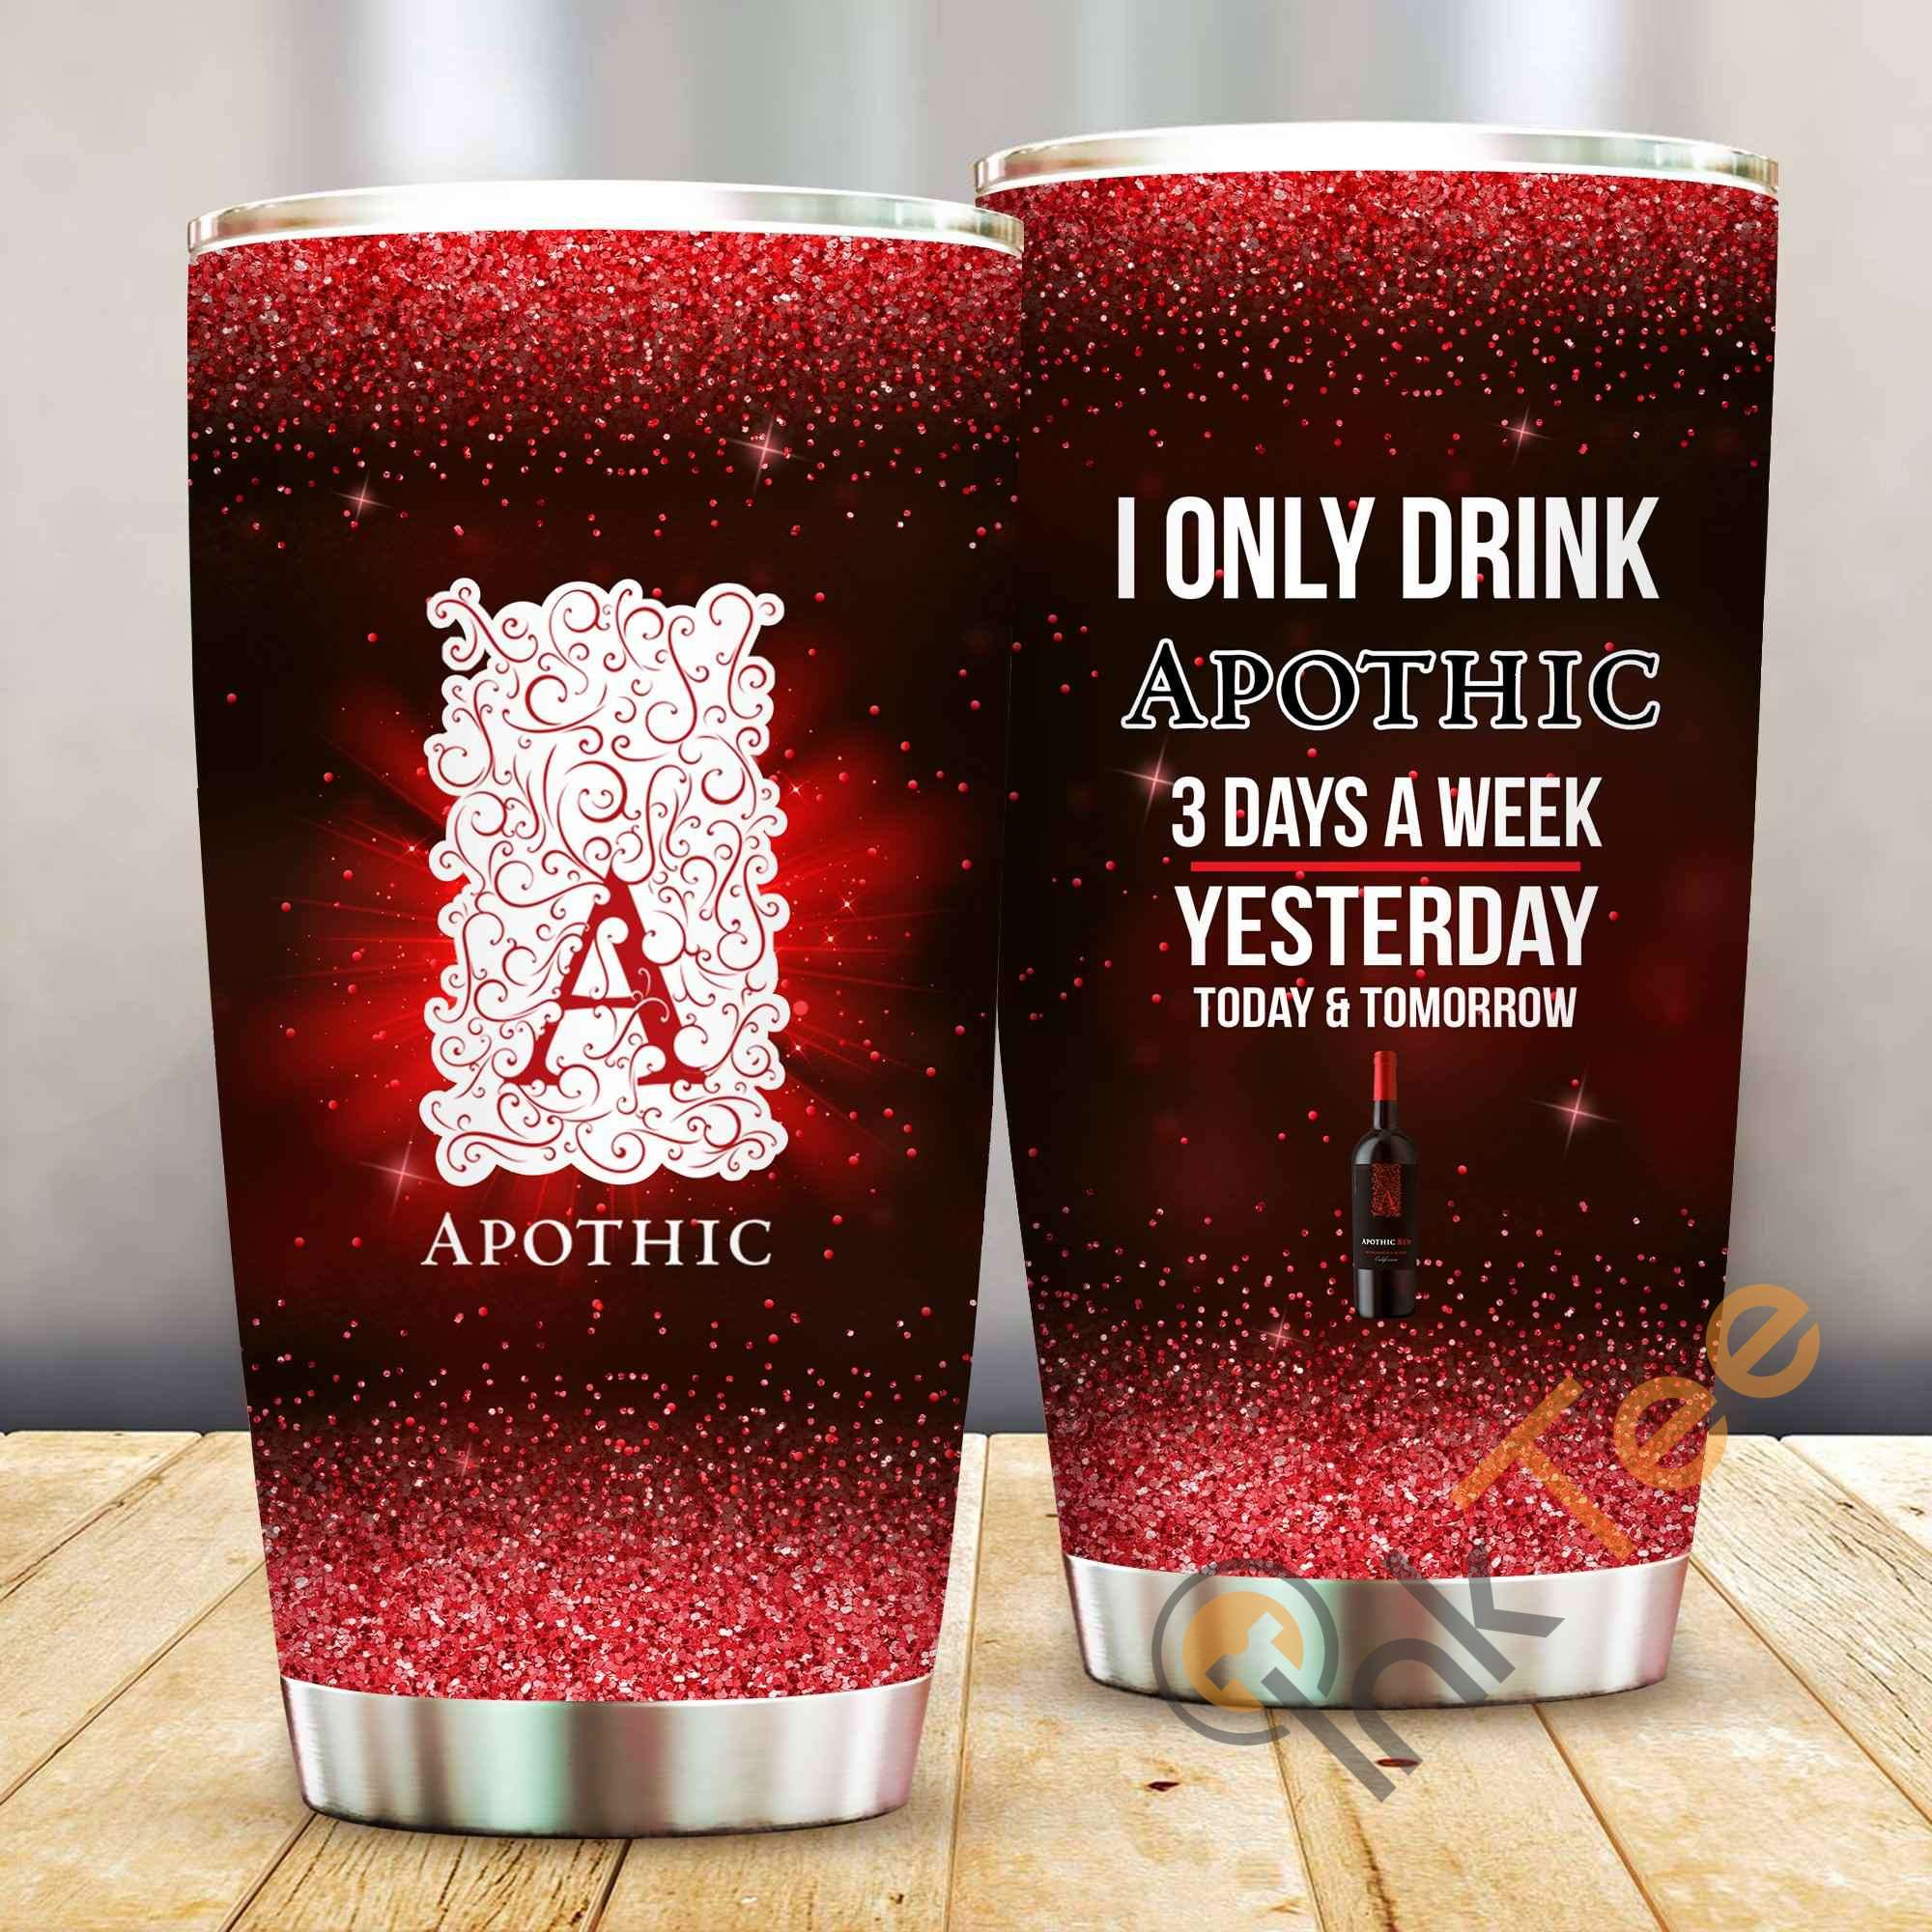 I Only Drink Apothic 3 Days A Week Amazon Best Seller Sku 3967 Stainless Steel Tumbler